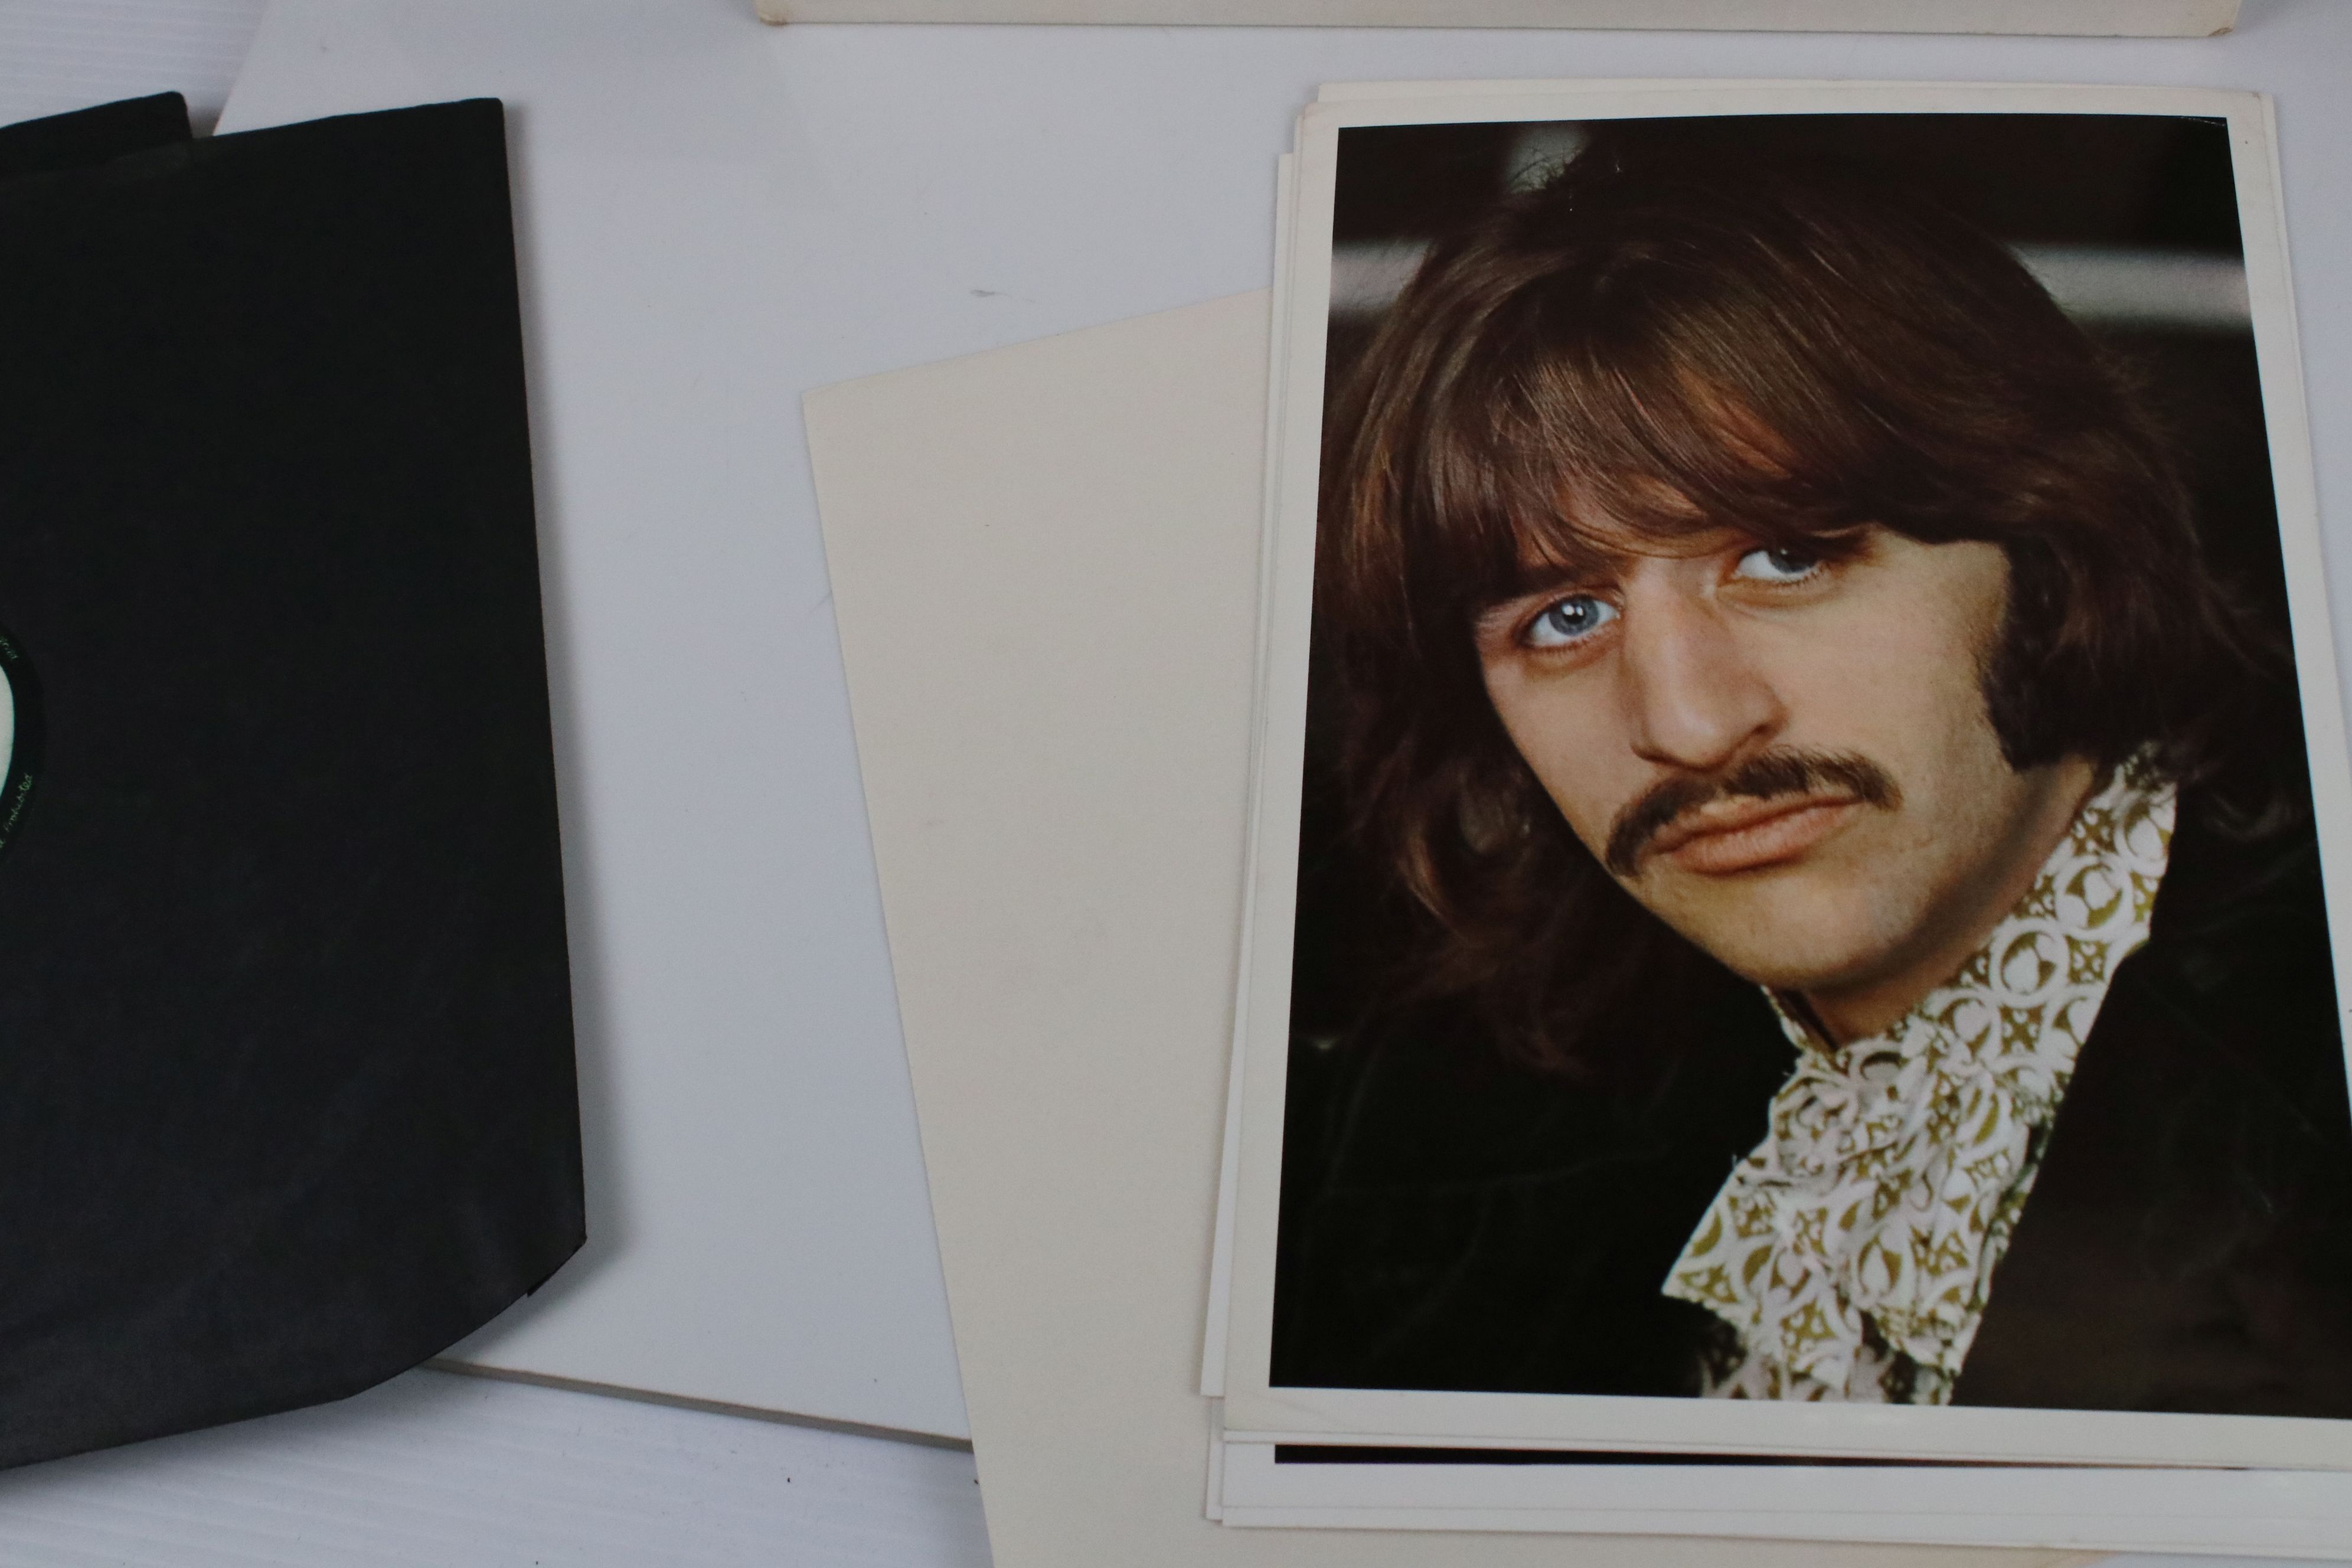 Vinyl - The Beatles White Album LP mono PMC7067-8, numbered 0001376 with 8 x coloured prints and - Image 7 of 10